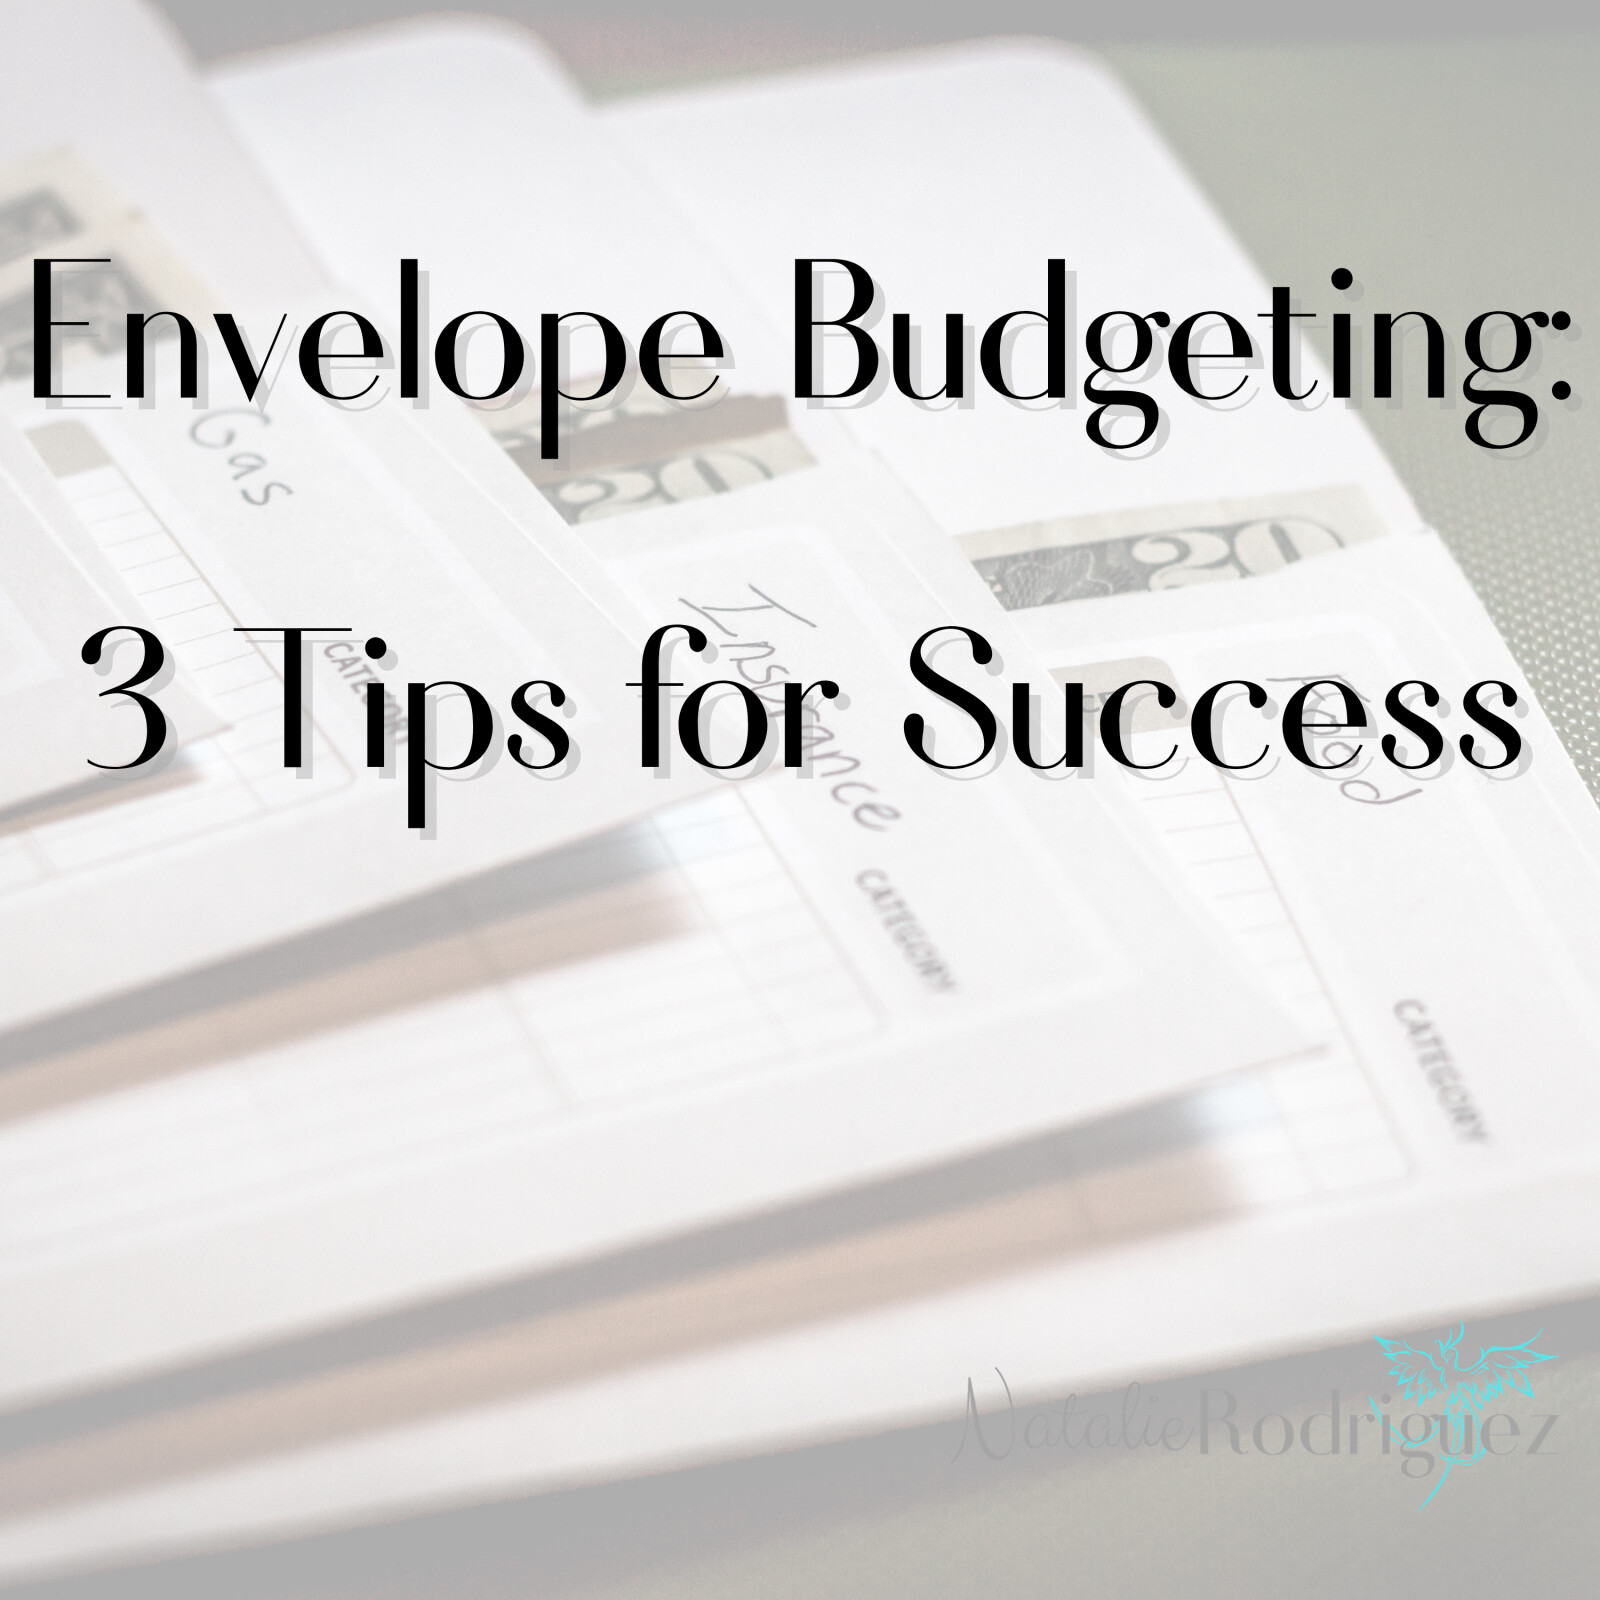 3 Tips for Succeeding with the Envelope Budgeting System